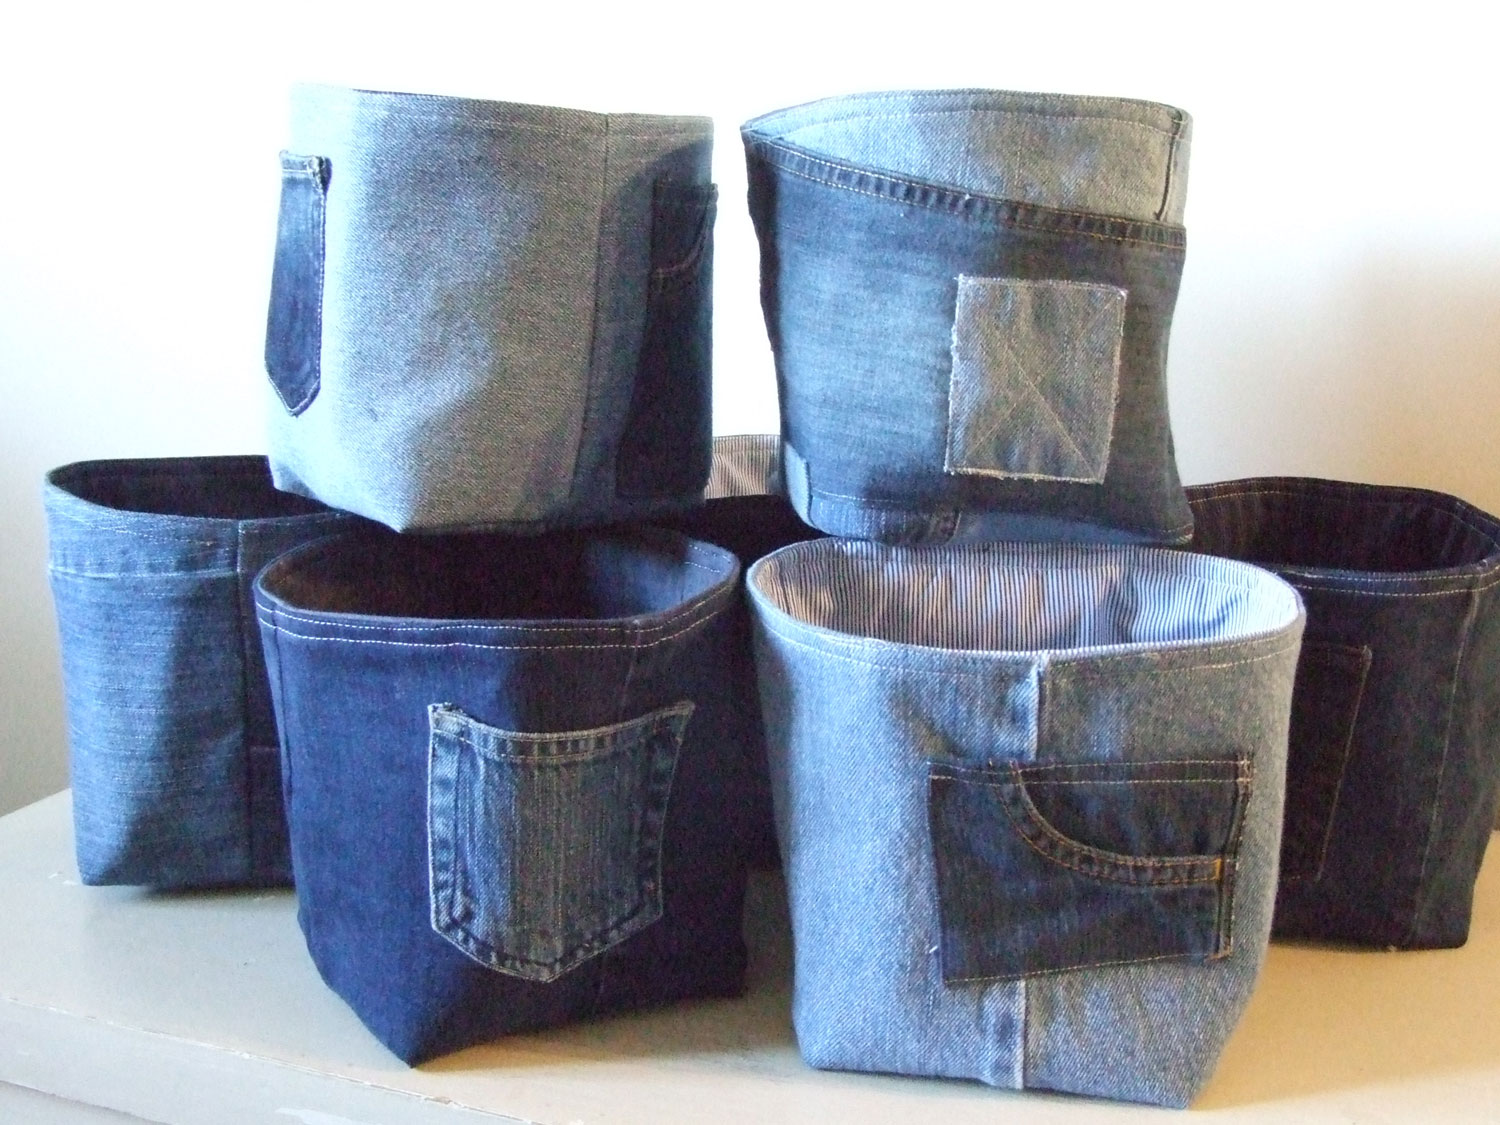 Recycled denim bowls